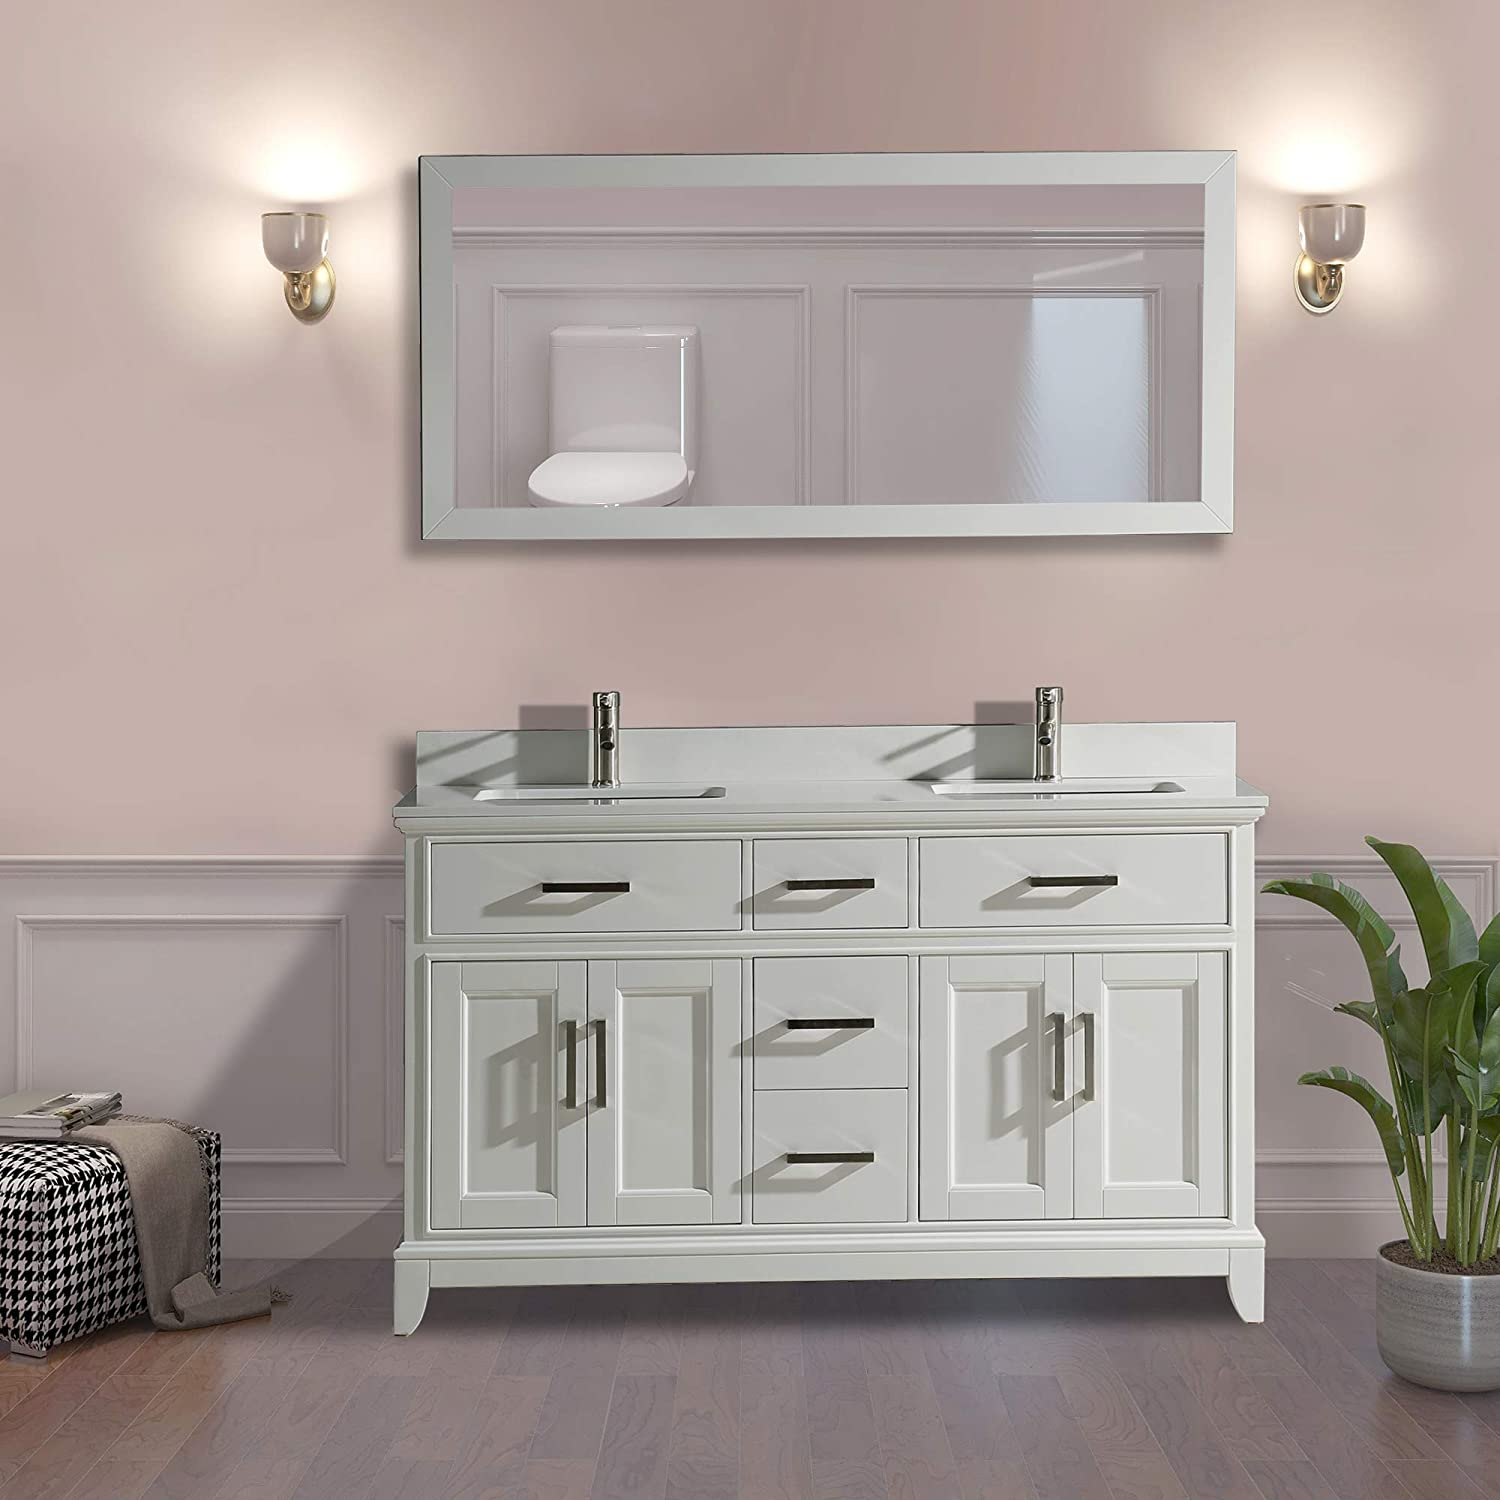 Vanity Art 60 Inch Double Sink Bathroom Vanity Set Super White Phoenix Stone, Soft Closing Doors Undermount Rectangle Sinks with Free Mirror – VA1060-DW